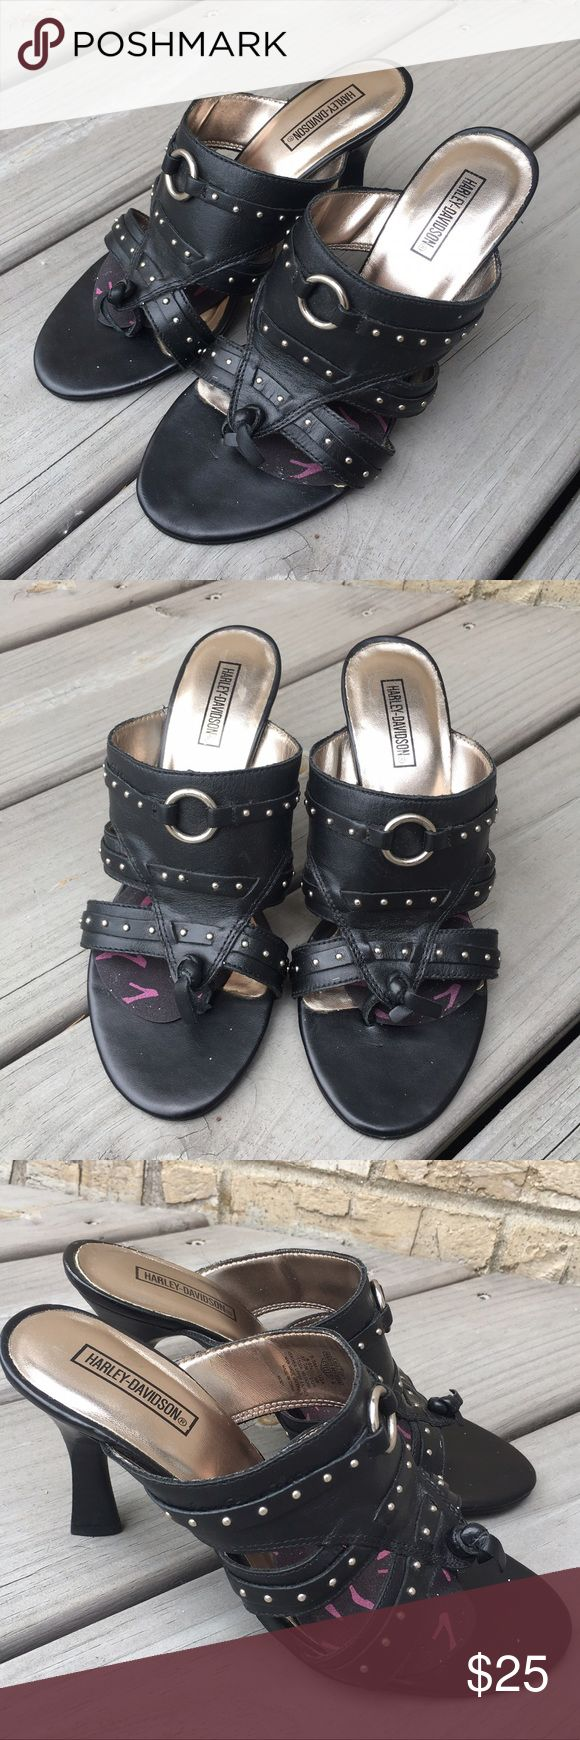 Harley Davidson MotorCycles Black Leather Slides Size 6.5 M Have gel inserts glued to the inside.  Pre-owned, good condition - see pictures for details. Happy poshing! :) Harley-Davidson Shoes Heels